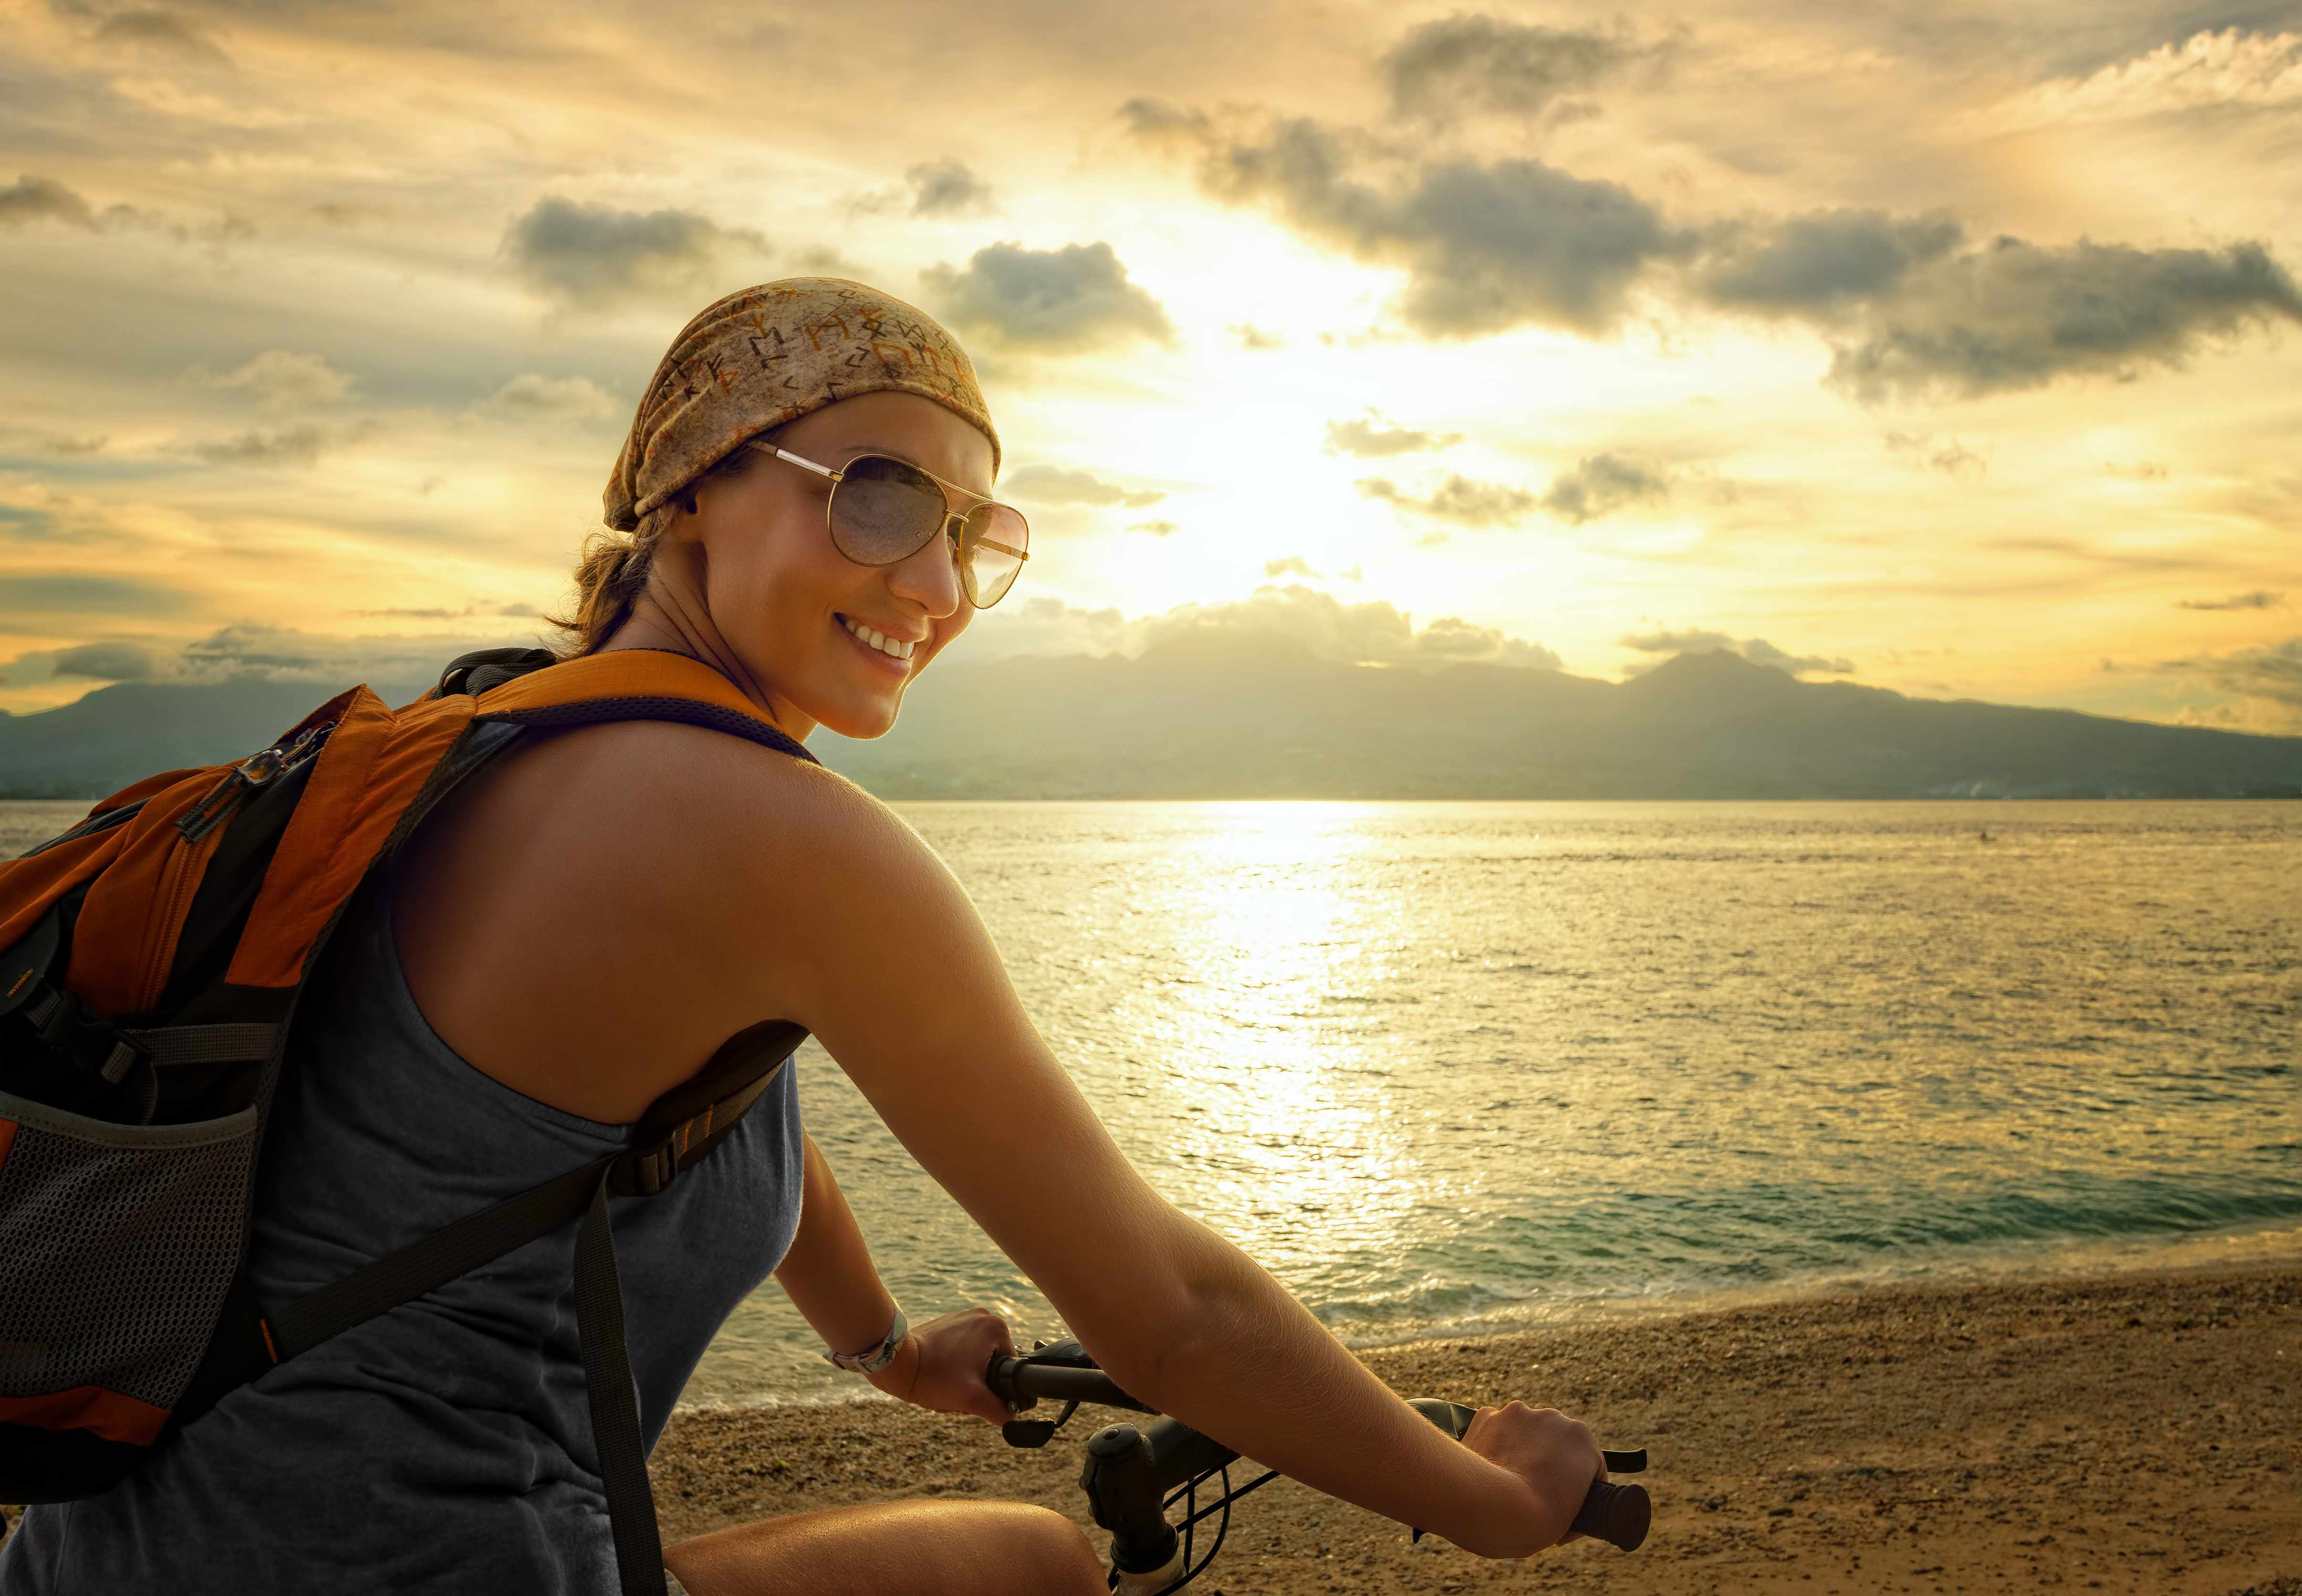 a young woman riding a bicycle along the beach or lake shore with the sun setting